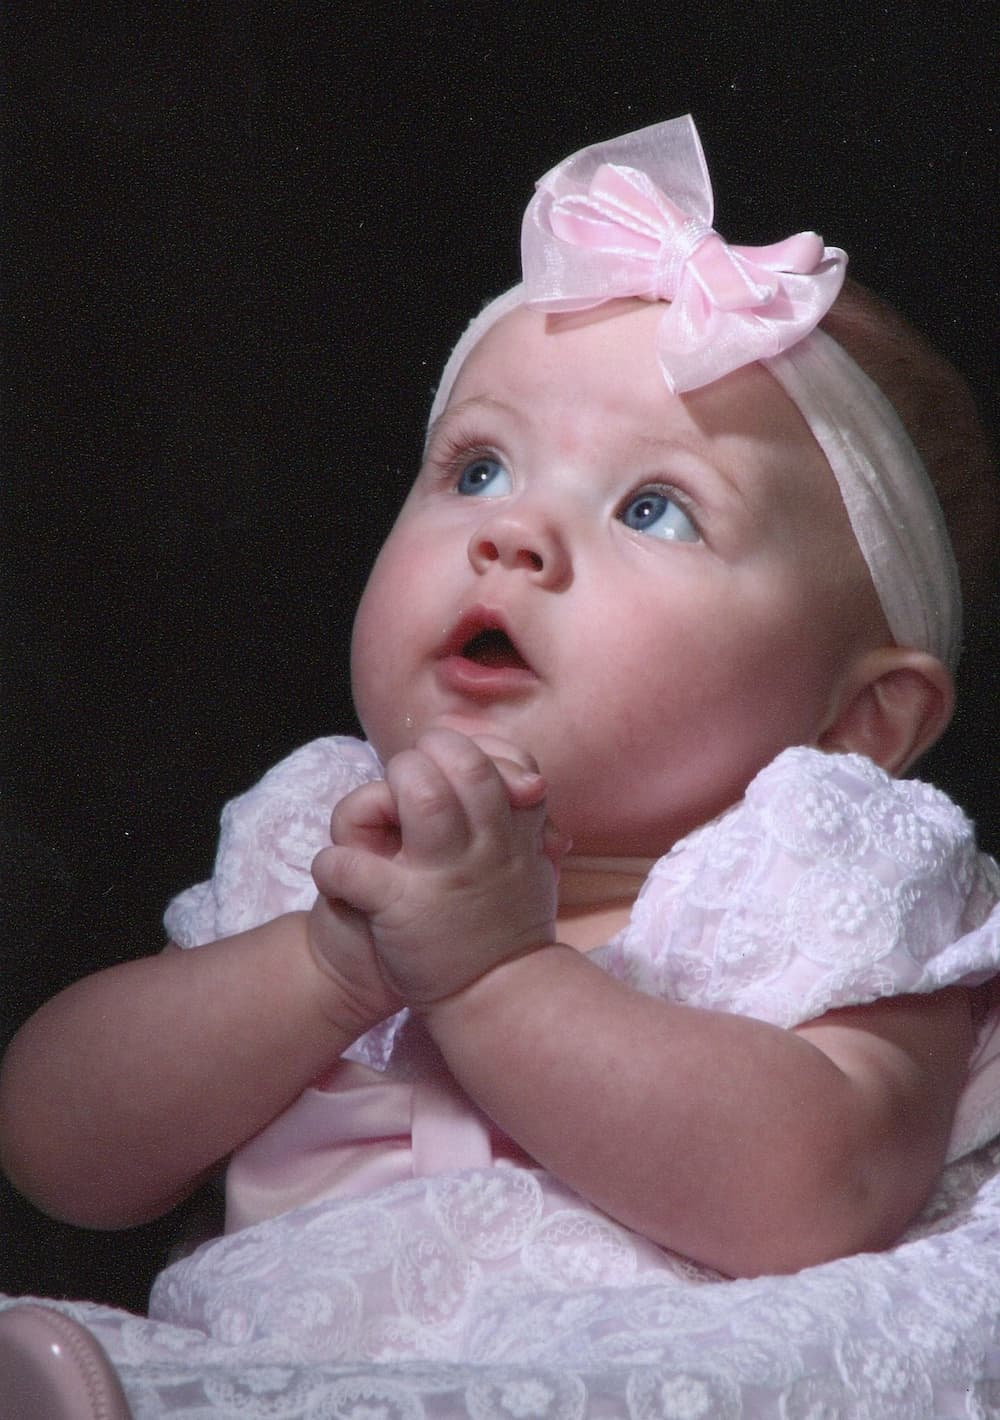 baby-girl-with-pink-bow-in-hair